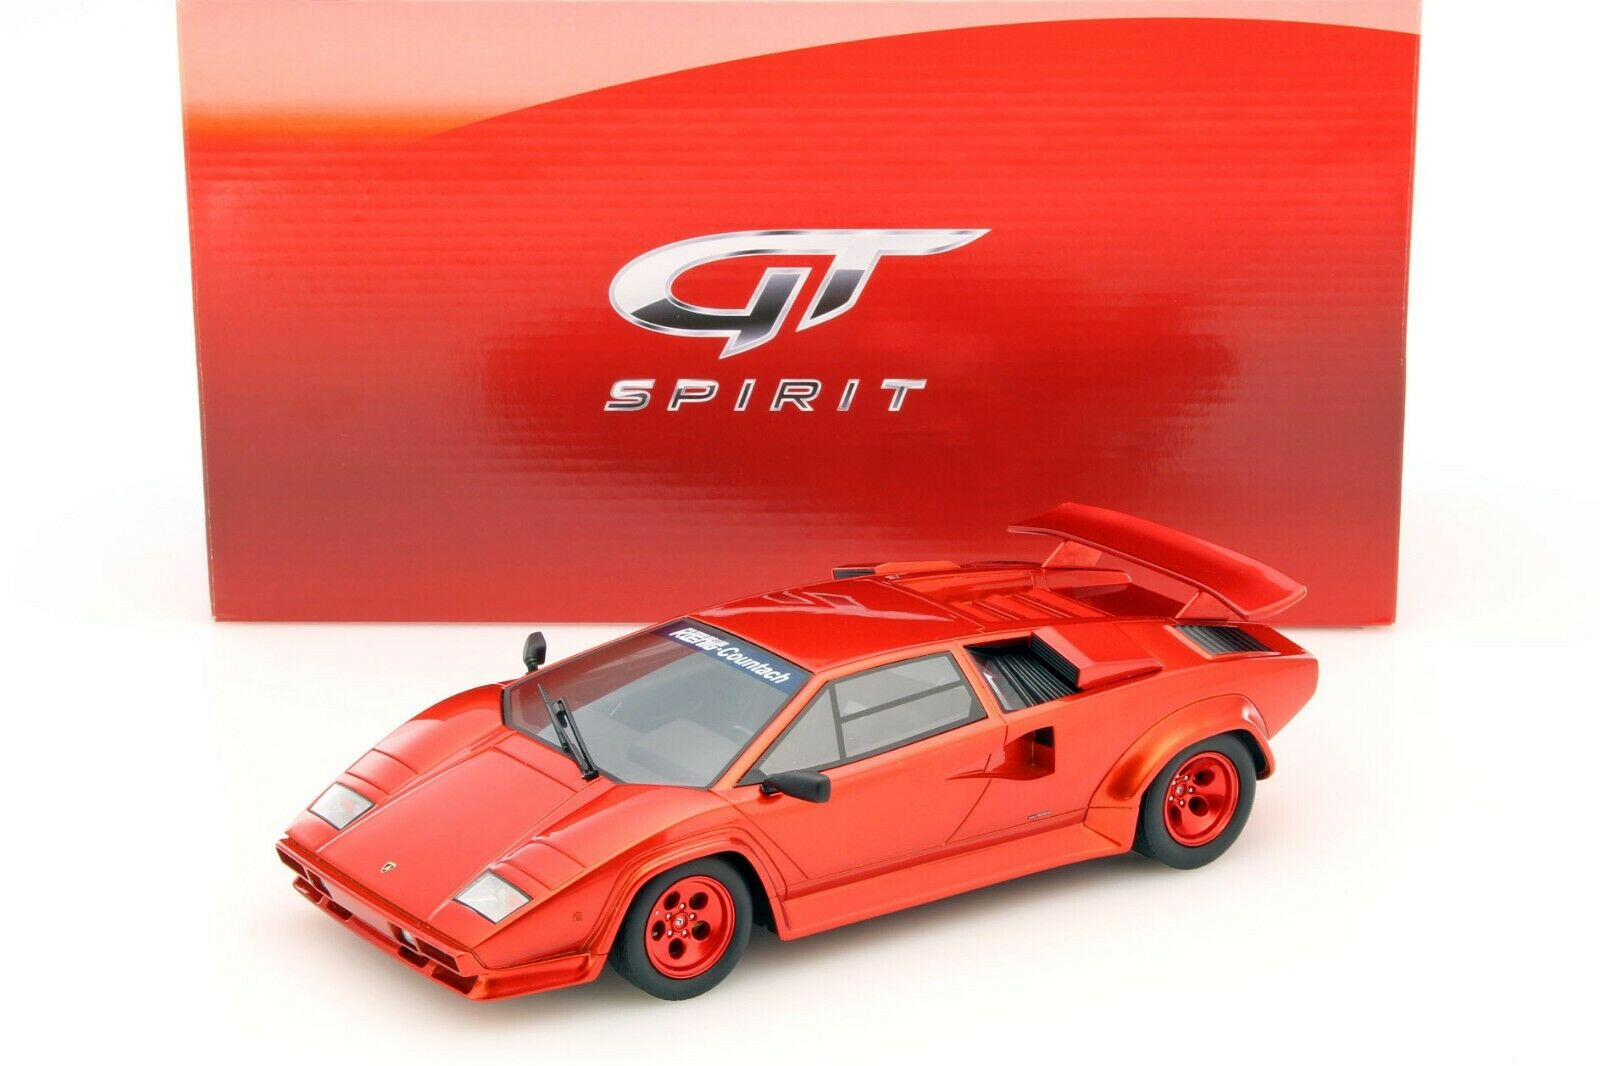 KOENIG SPECIAL COUNTACH TURBO rosso 1983 Candy apple rosso - 1 18 - GT SPIRIT